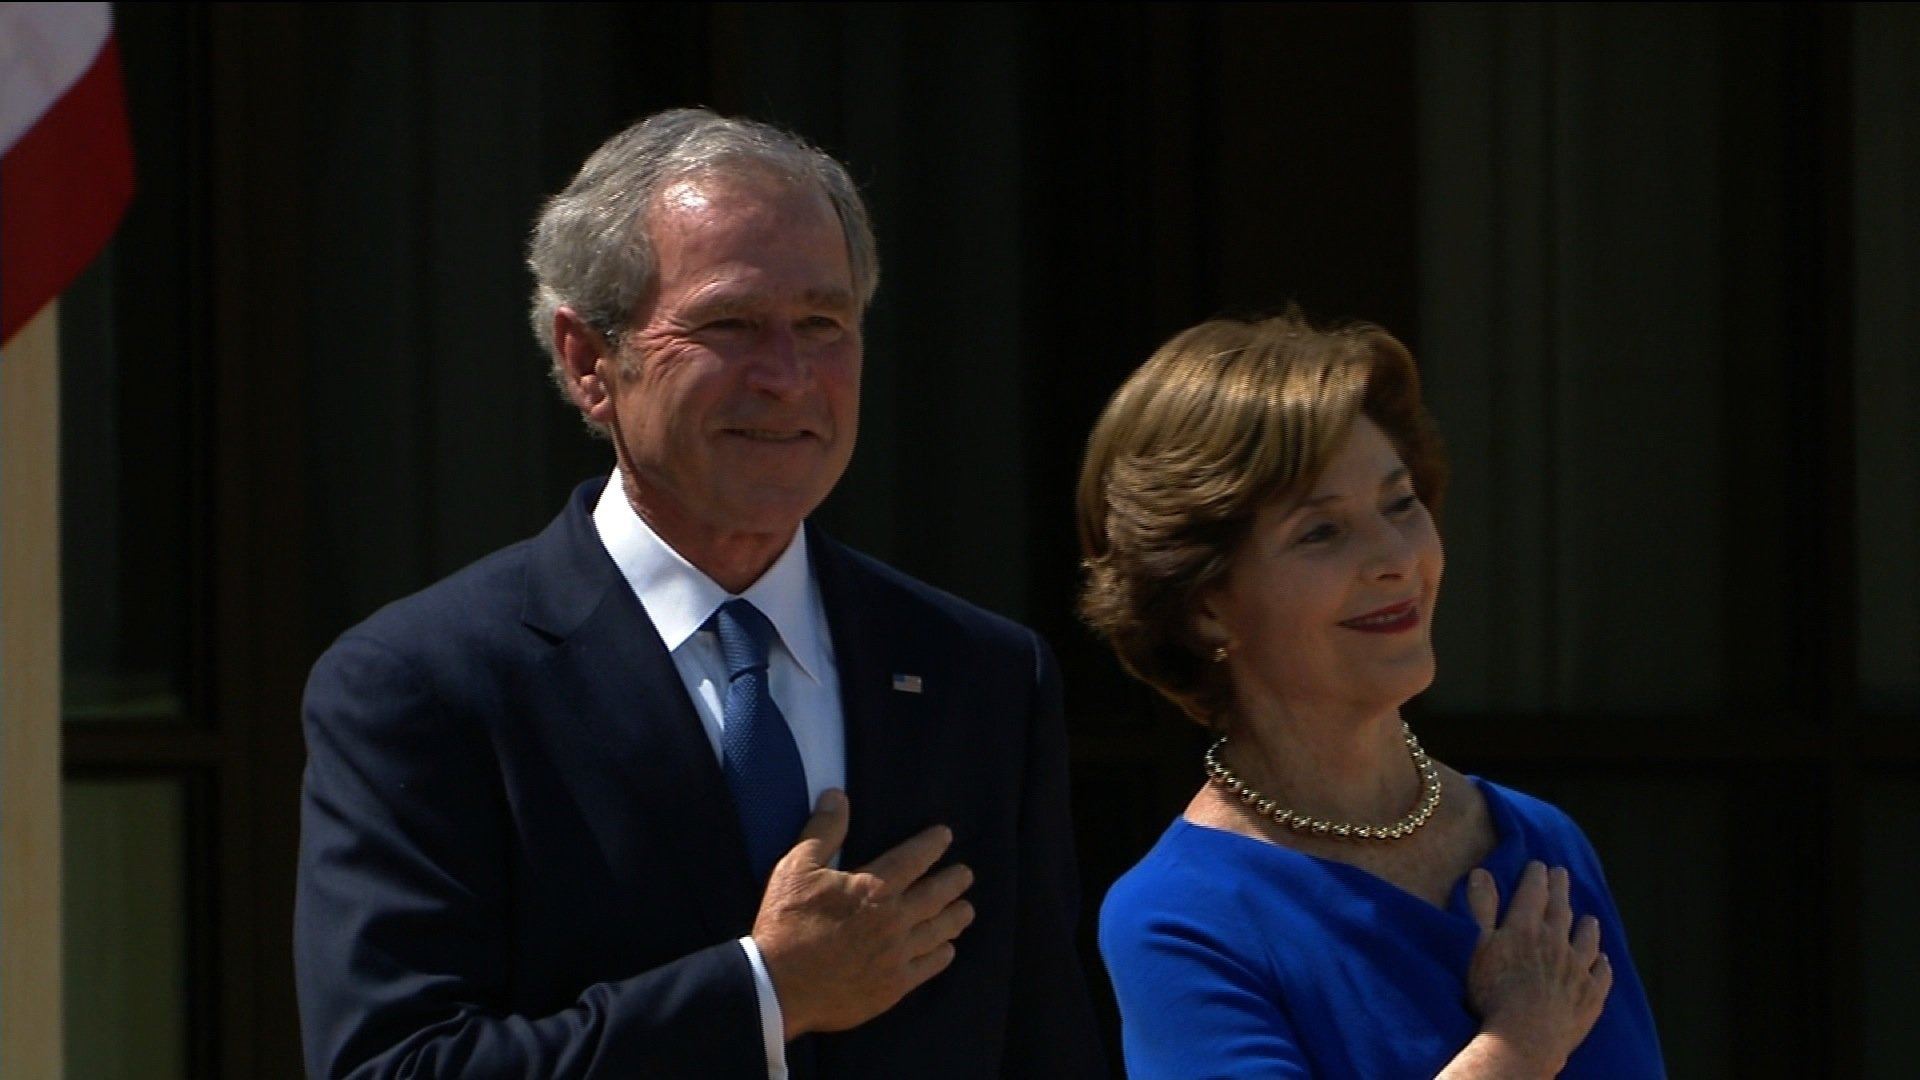 Five presidents -- three Democrats and two Republicans --gathered today in Dallas at the ceremony for the George W. Bush Presidential Center. (Credit: CNN)